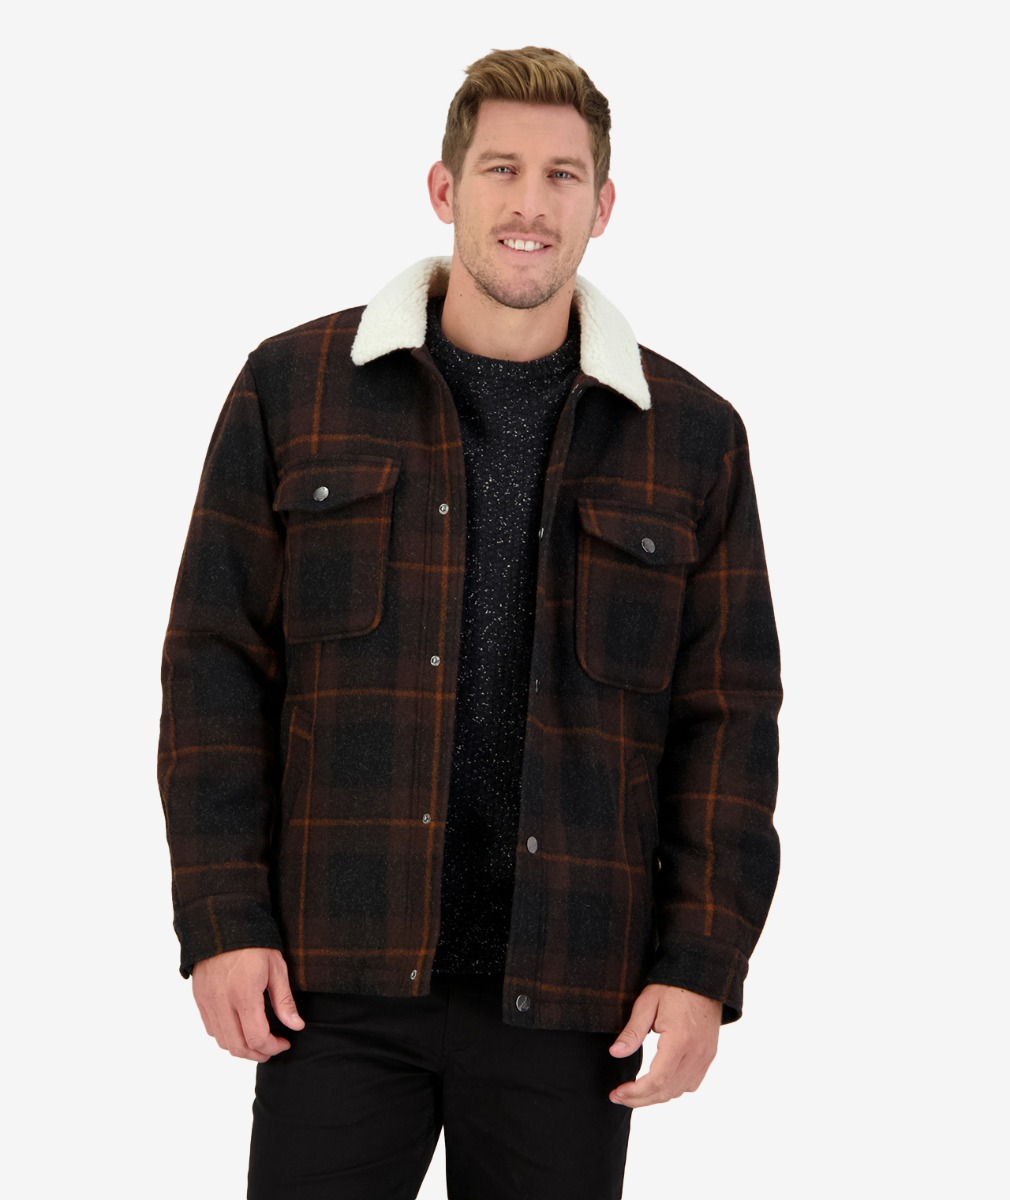 Swanndri Men's Kaituna Sherpa Lined Jacket in Double Brown Check